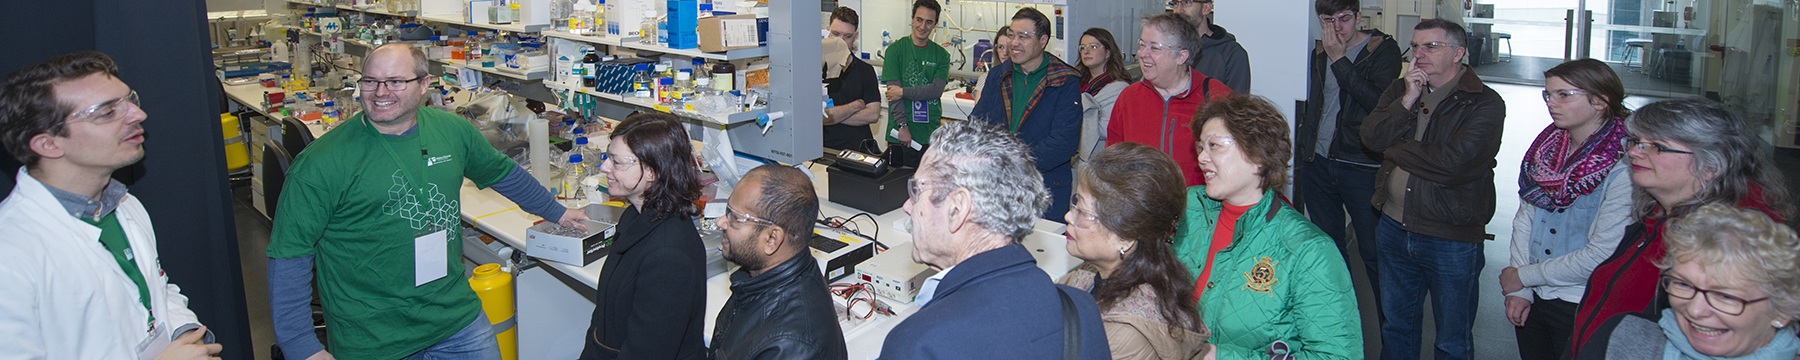 Tour group in a laboratory